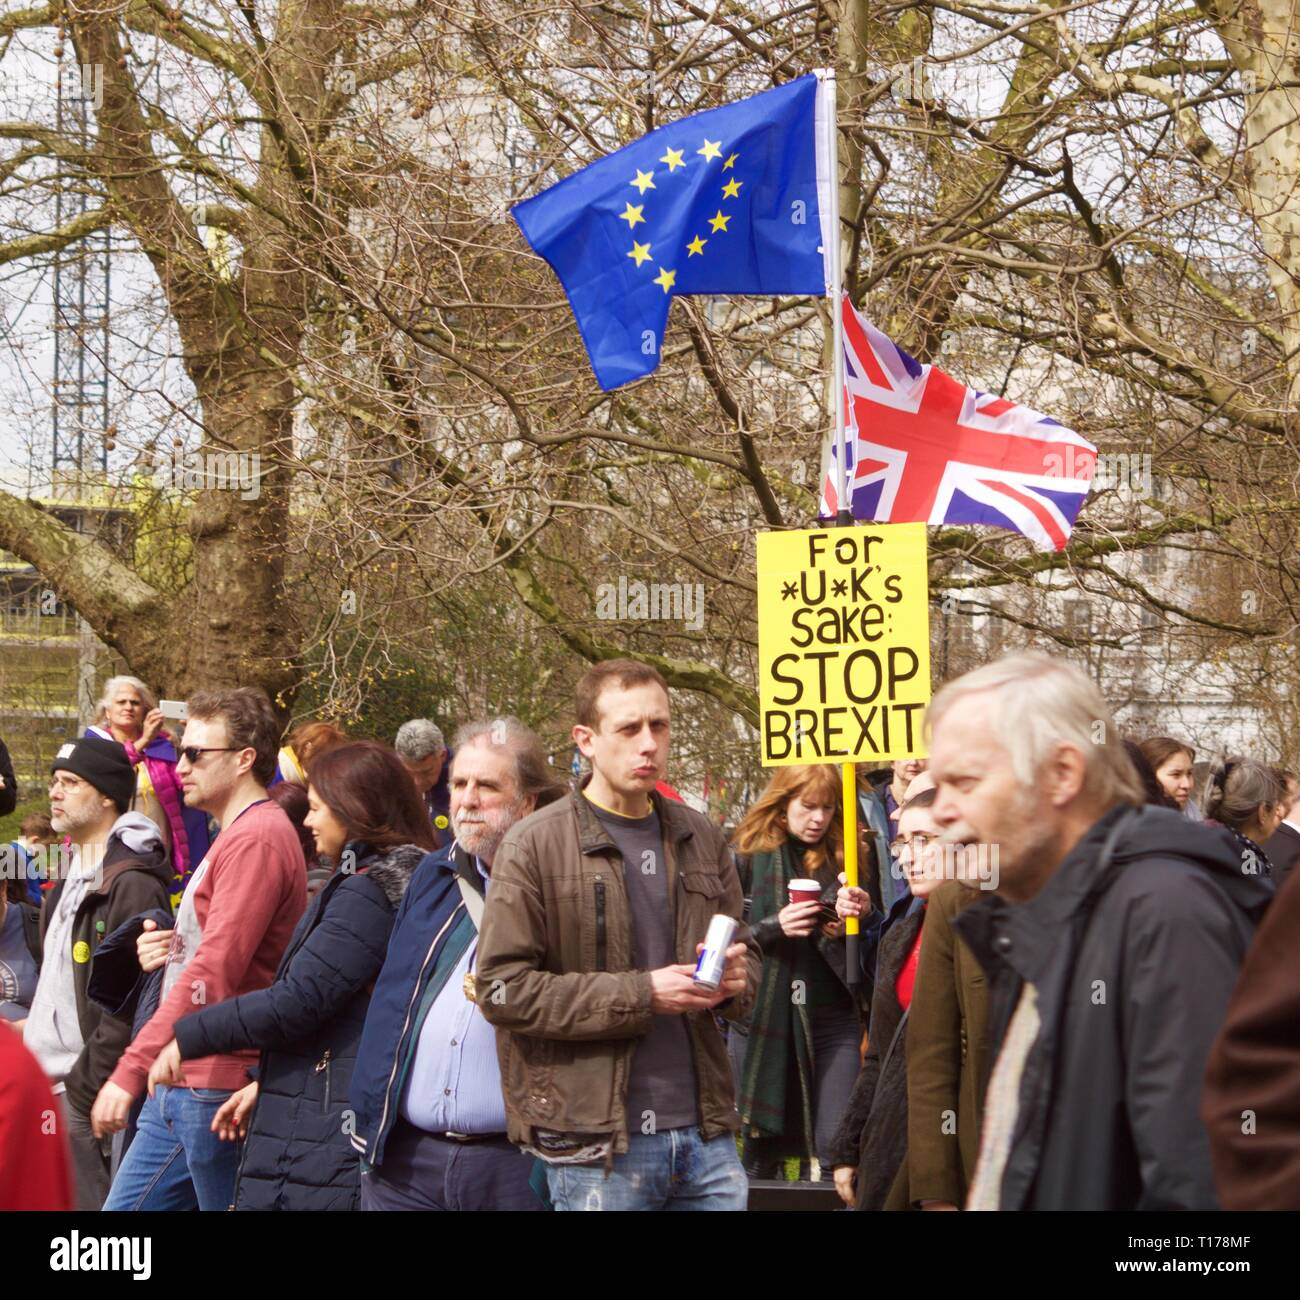 Stop Brexit banner with Union Jack and European flag at Brexit march in London - Stock Image